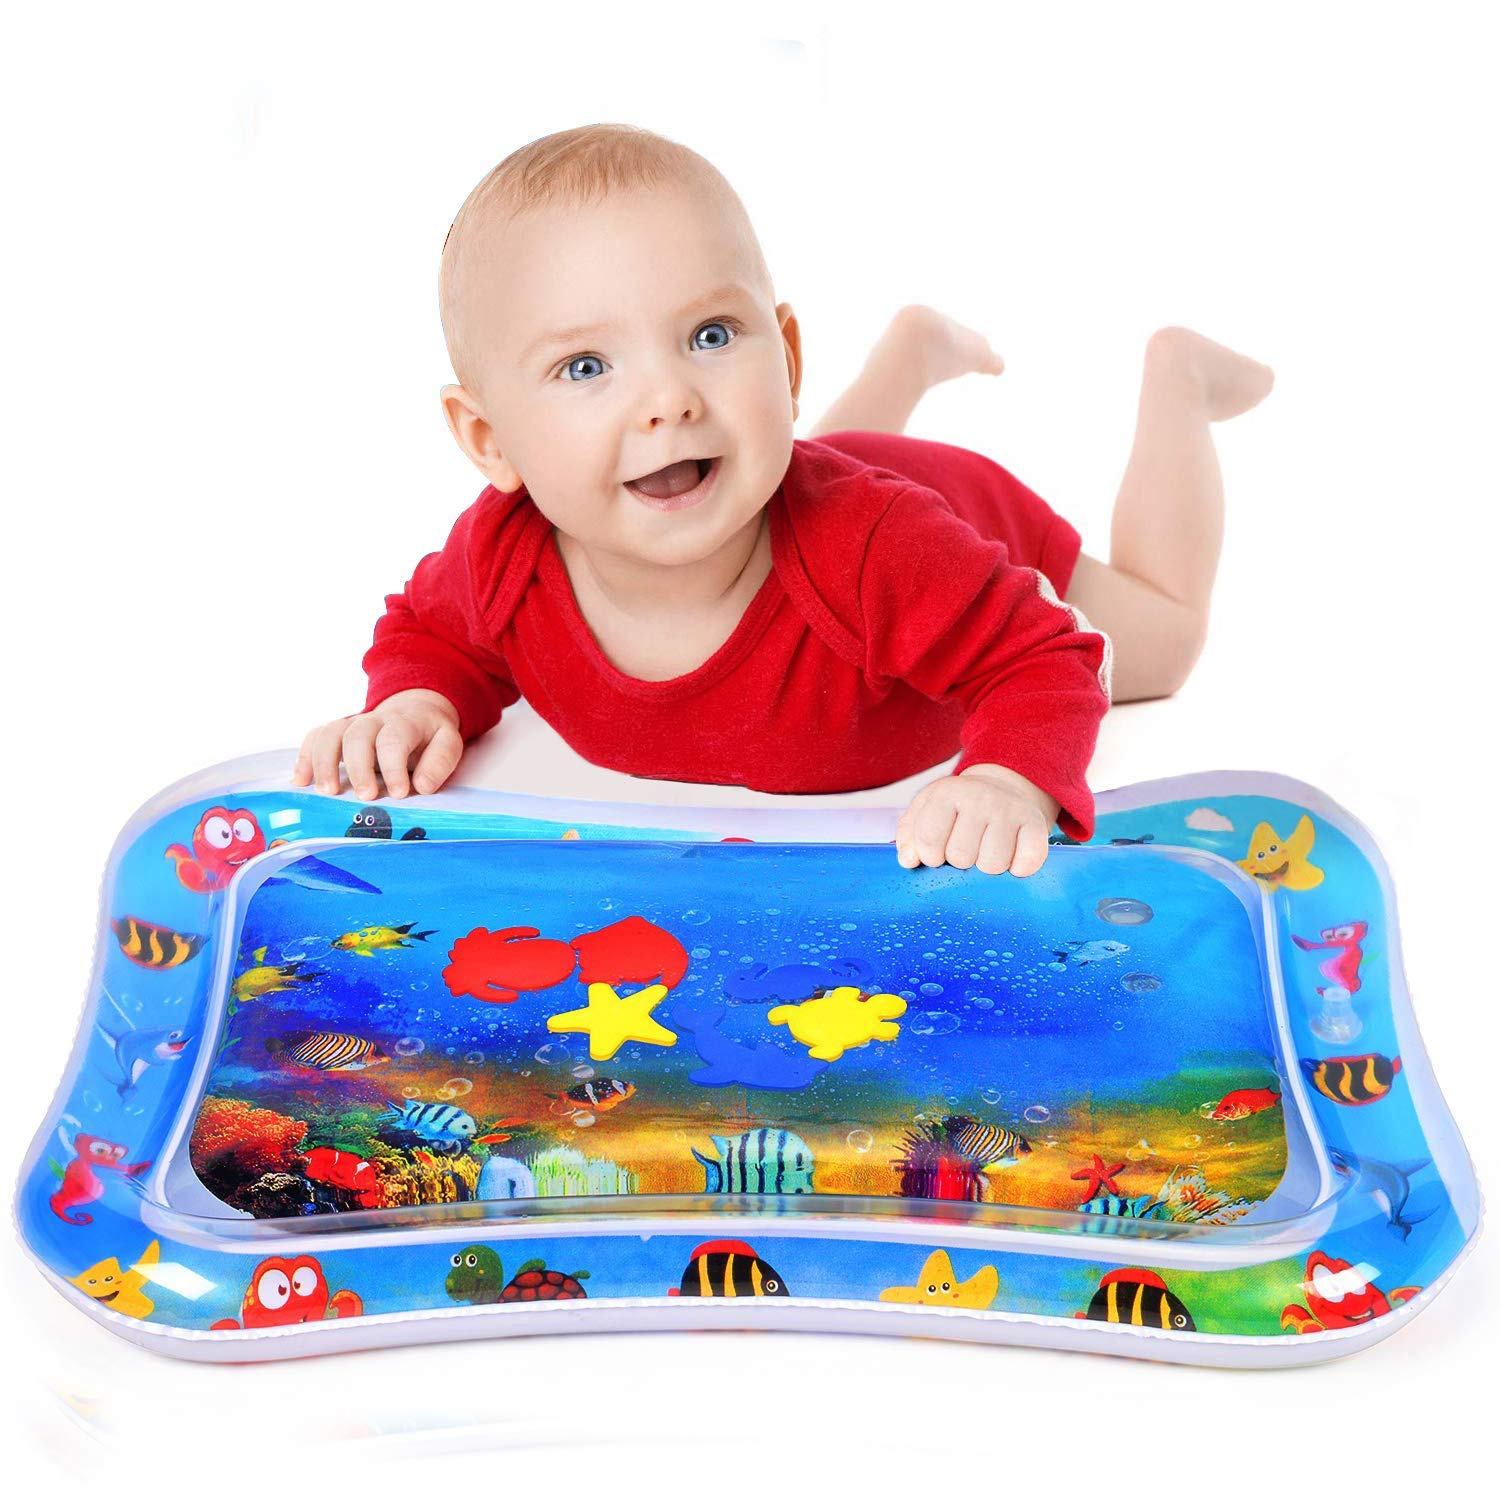 Raxoon Infants & Toddlers Tummy Time Water Mat, Perfect Toys for Your Baby's Stimulation and Growth by Raxoon (Image #4)